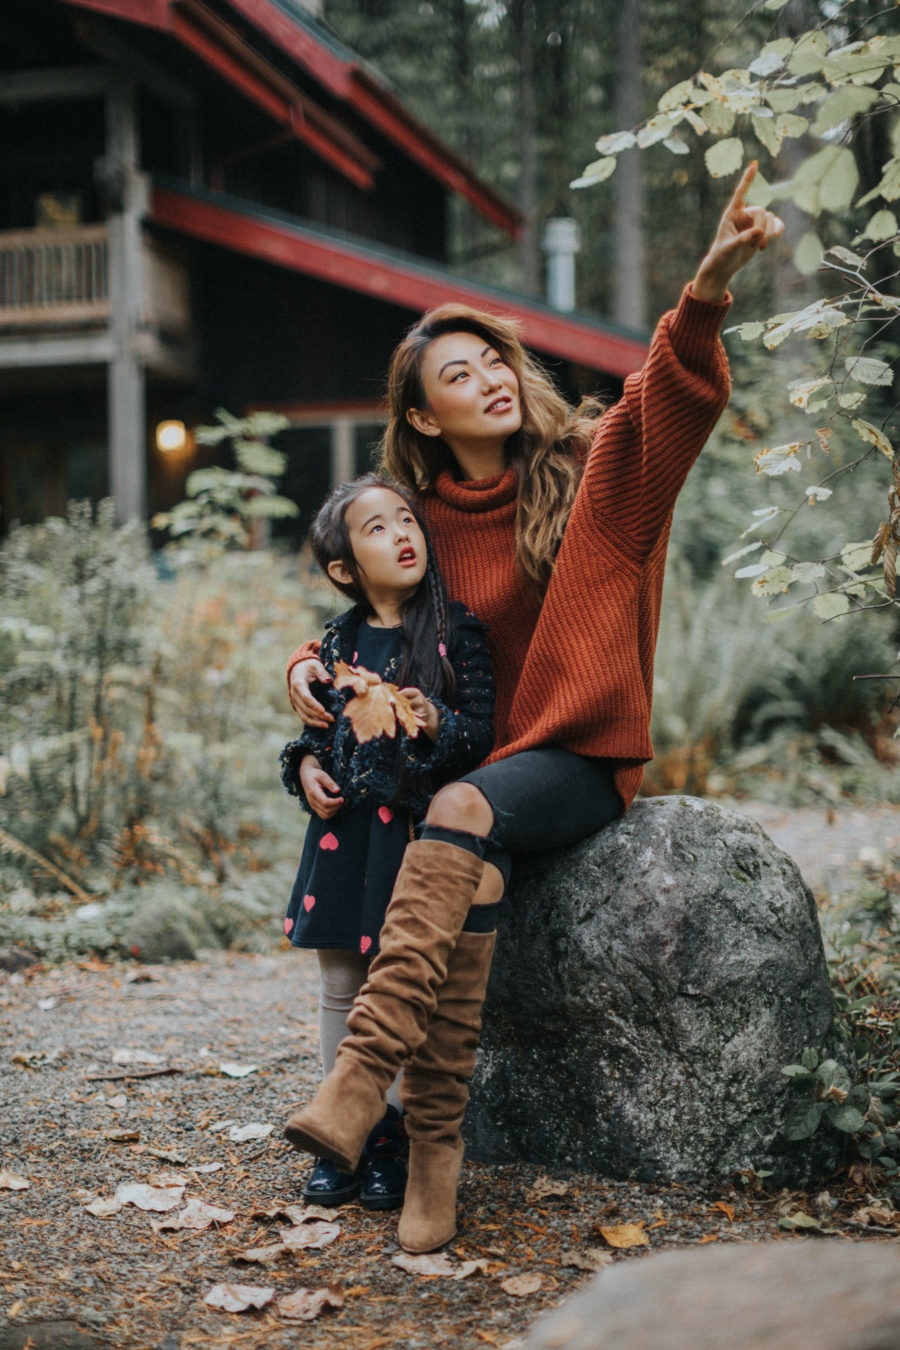 hiking in the mountains, mountain family photos with kids, hiking with kids, fall in oregon // NotJessFashion.com